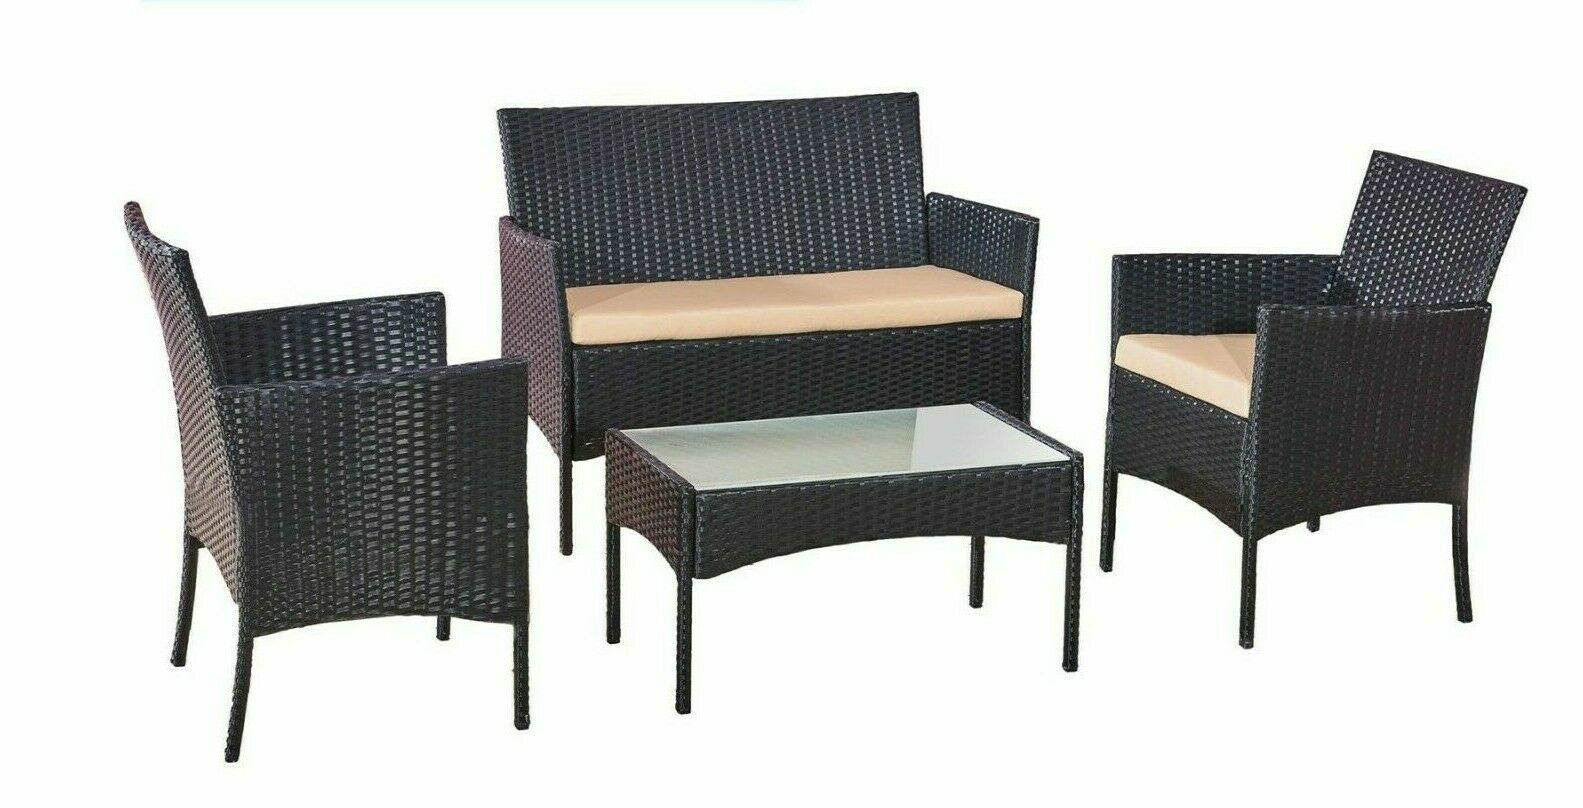 Garden Furniture - 4 PCs Rattan Garden Furniture Set With Chairs and Table in Black/ Brown/ Grey